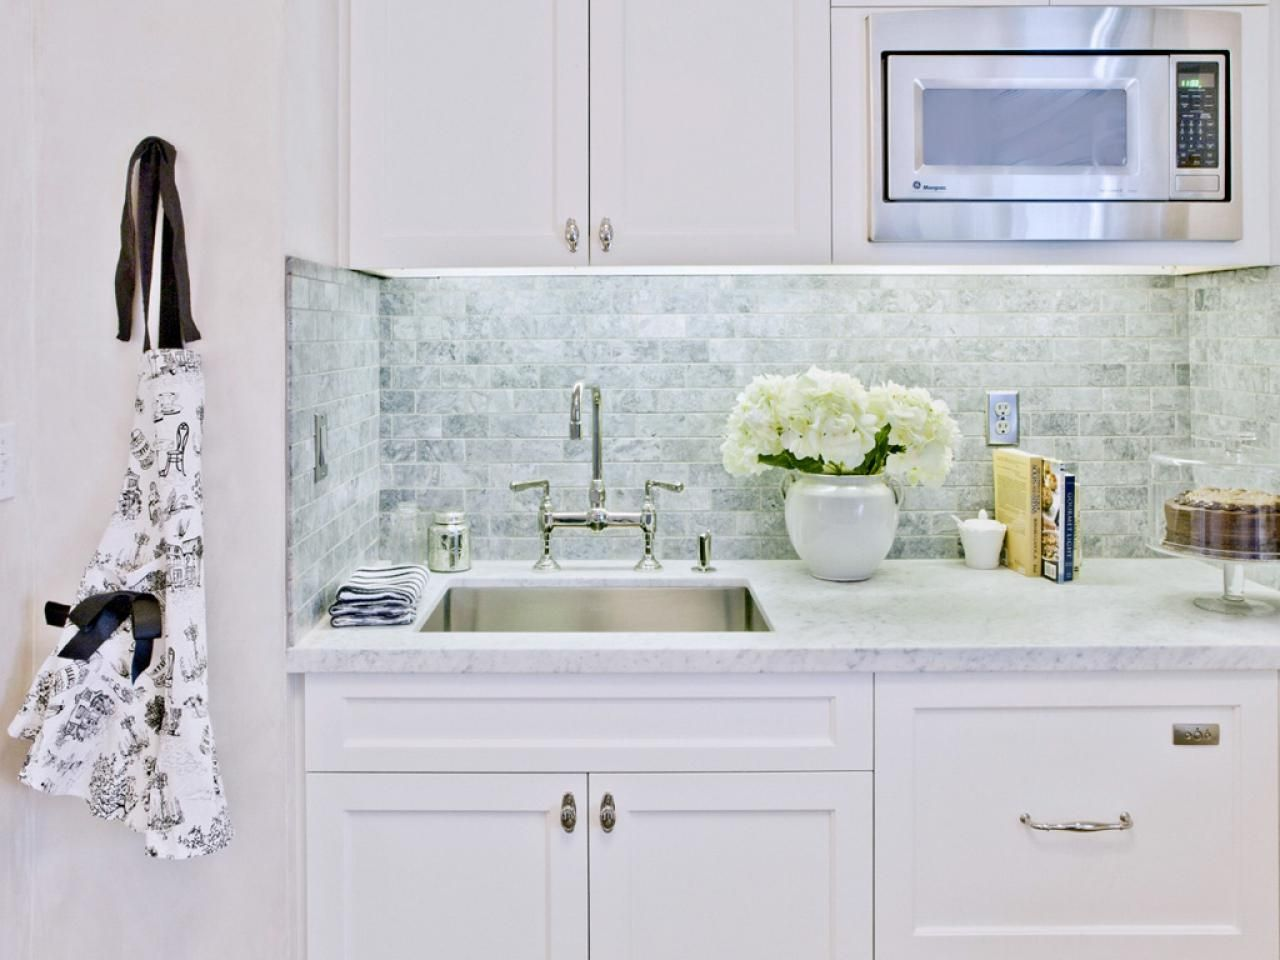 Subway Tile Backsplash Kitchen Pictures | http://jubiz.info | Pinterest